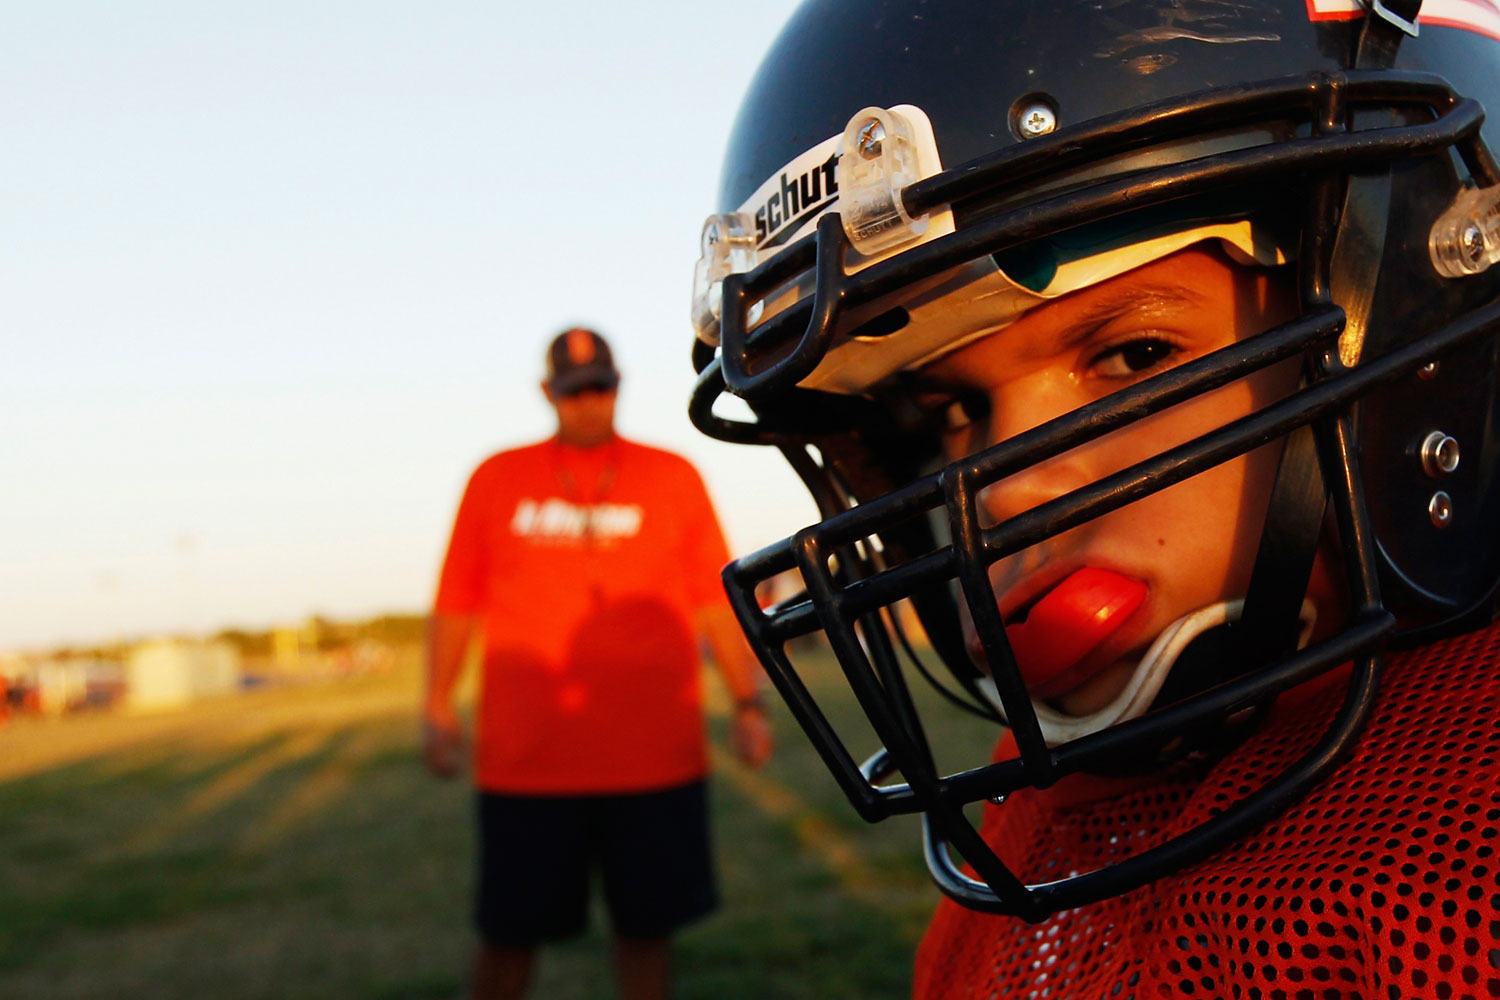 A youngster chews on his mouthguard during the filming of the television docu-series  Friday Night Tykes  in San Antonio, Texas.